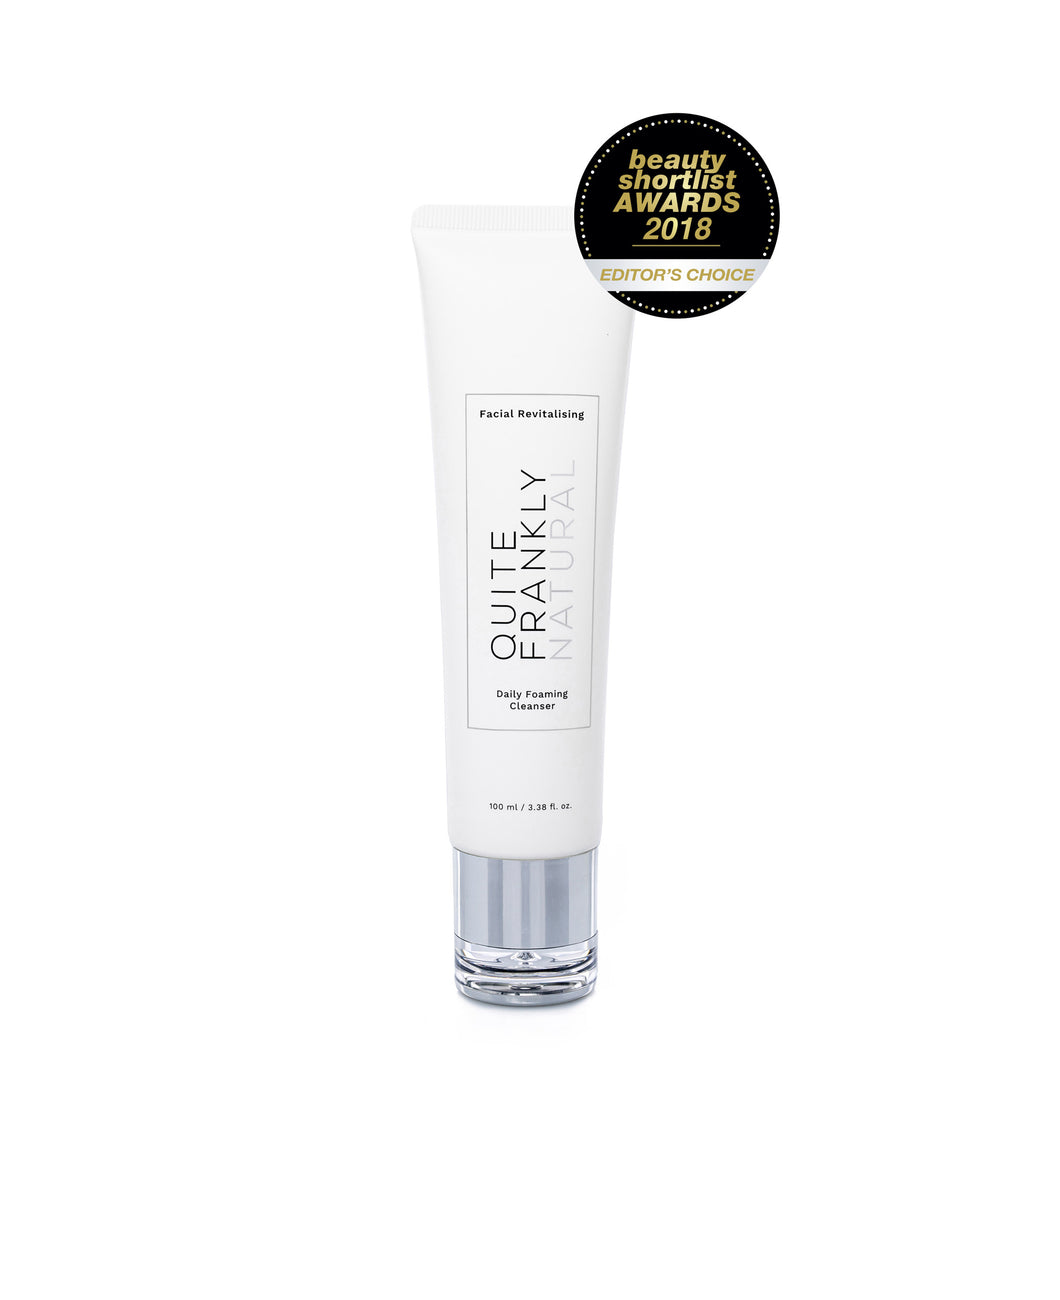 Facial Revitalising Daily Foaming Cleanser